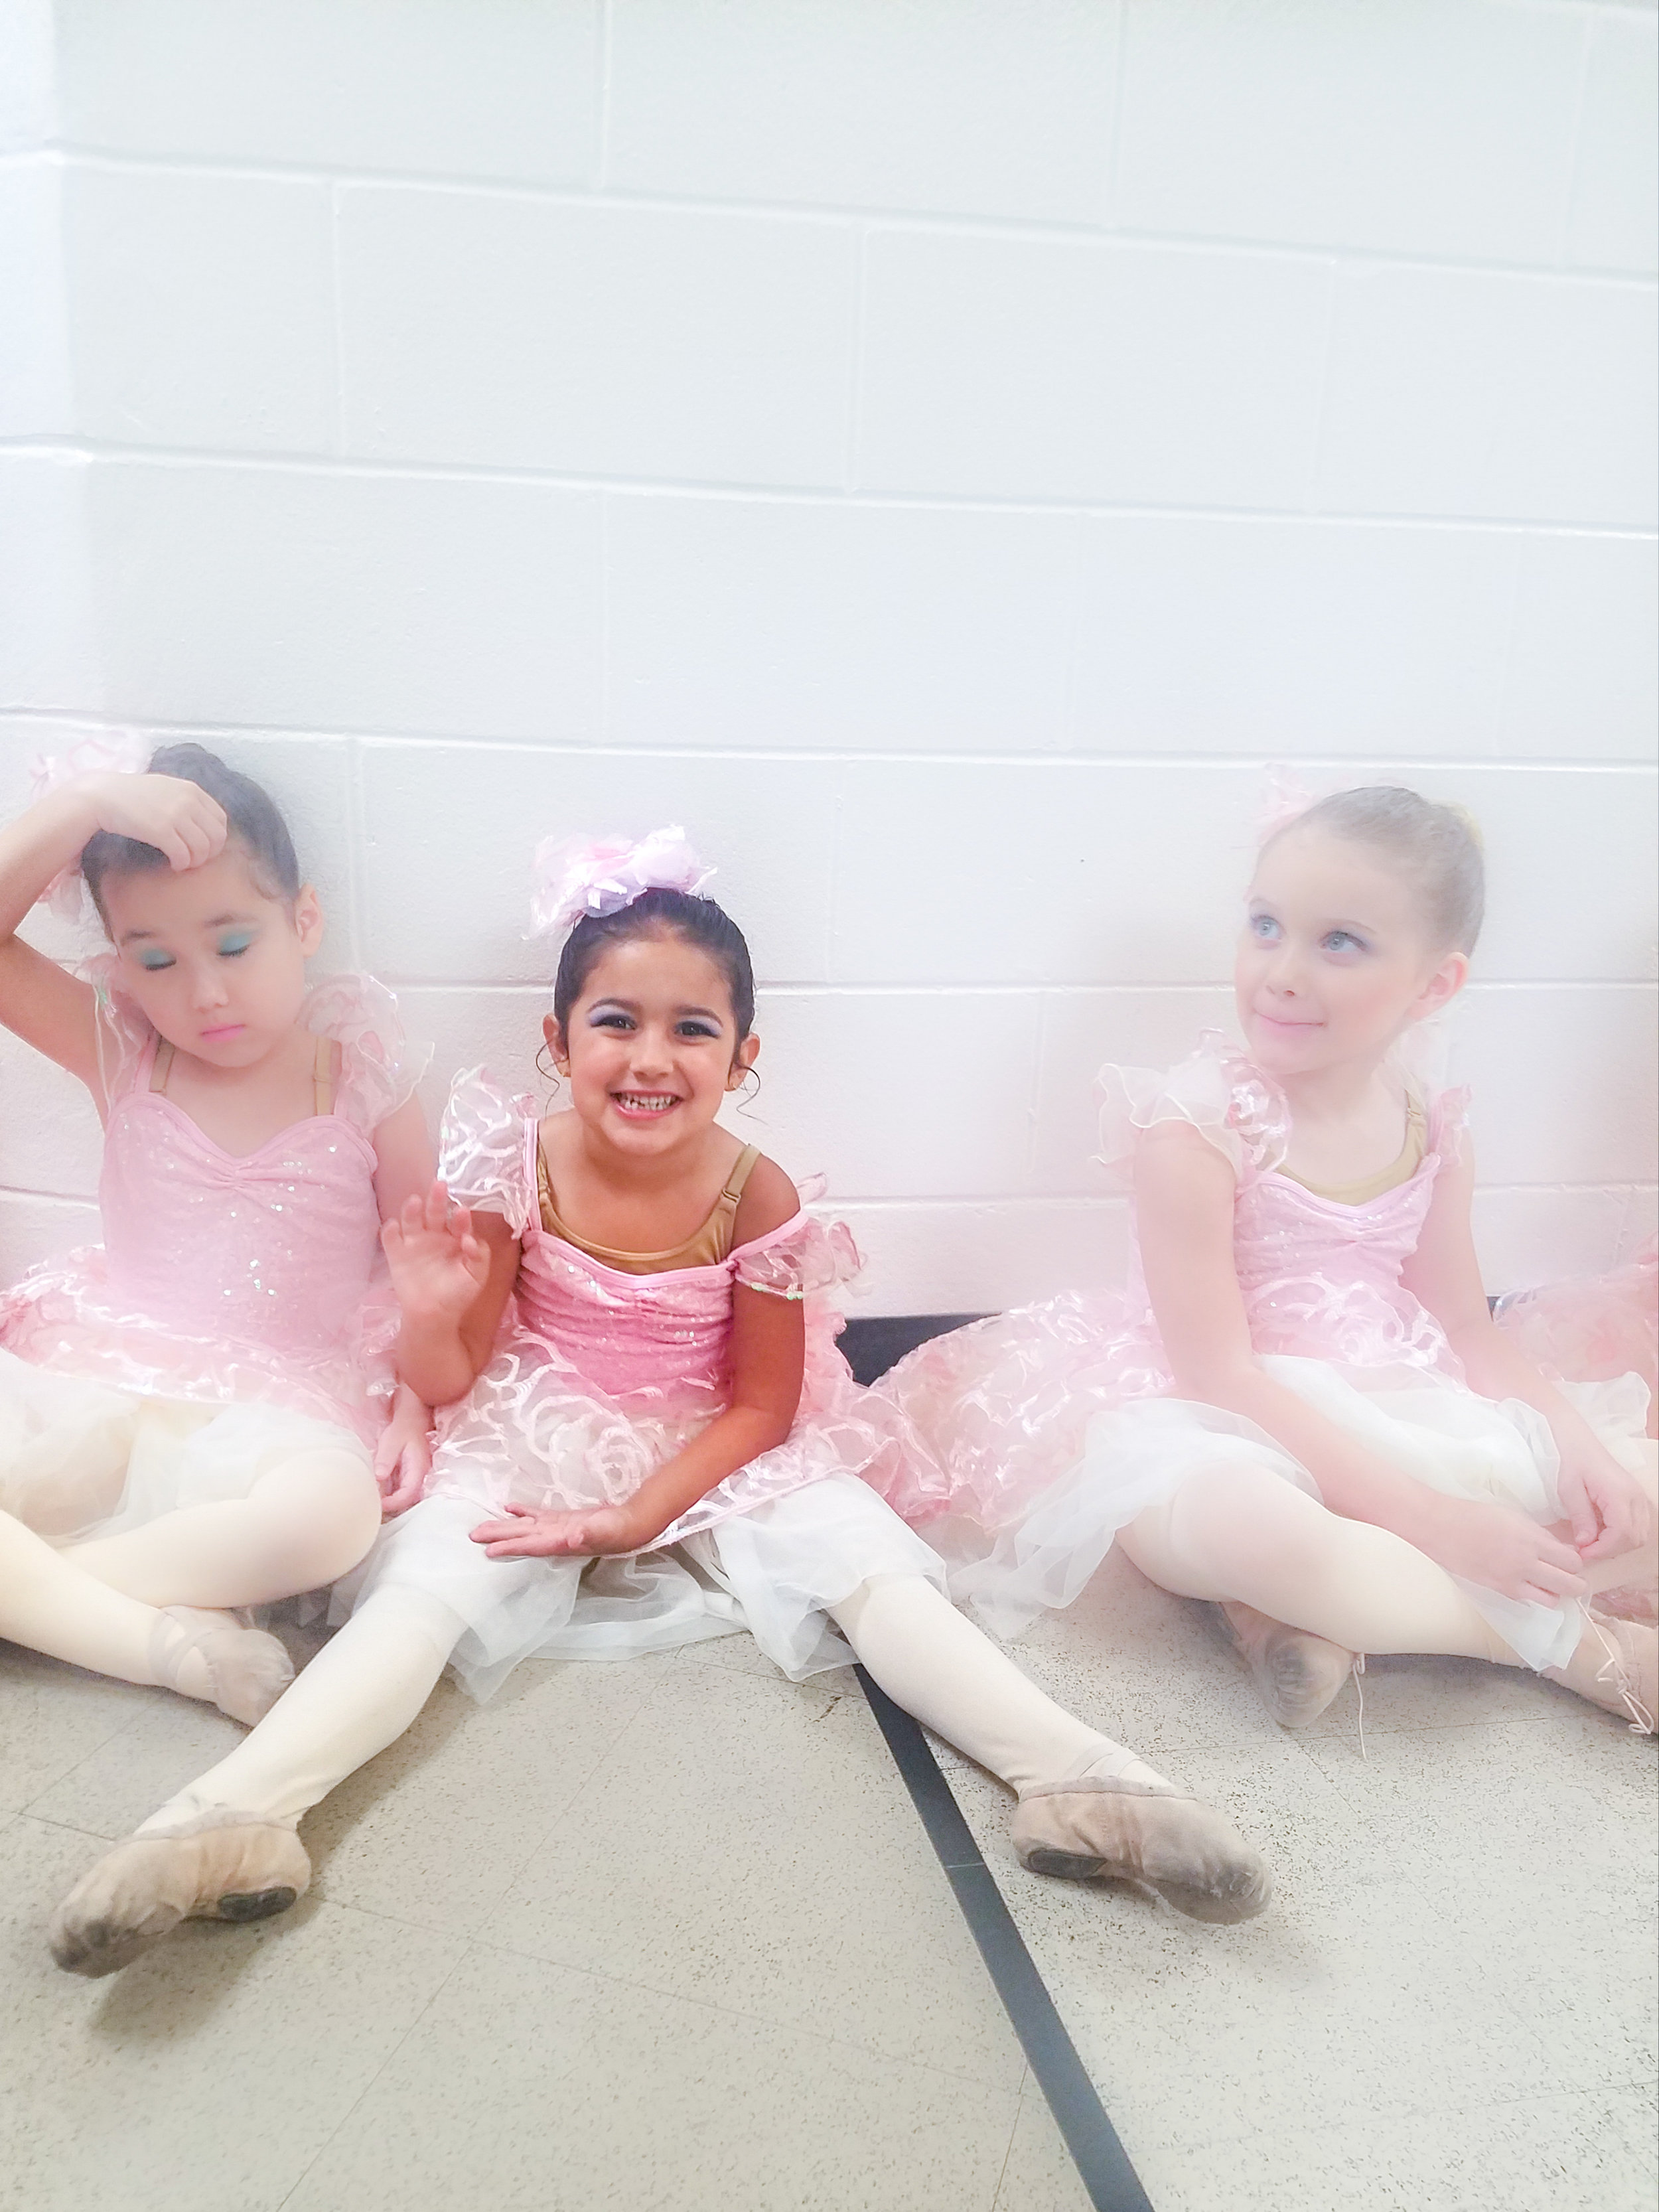 Waiting for her part in Beauty & The Beast. As a pre-professional school, RBO produces the most ballets annually, over any other local studio (many of them Disney themed - a total bonus for the kids!)